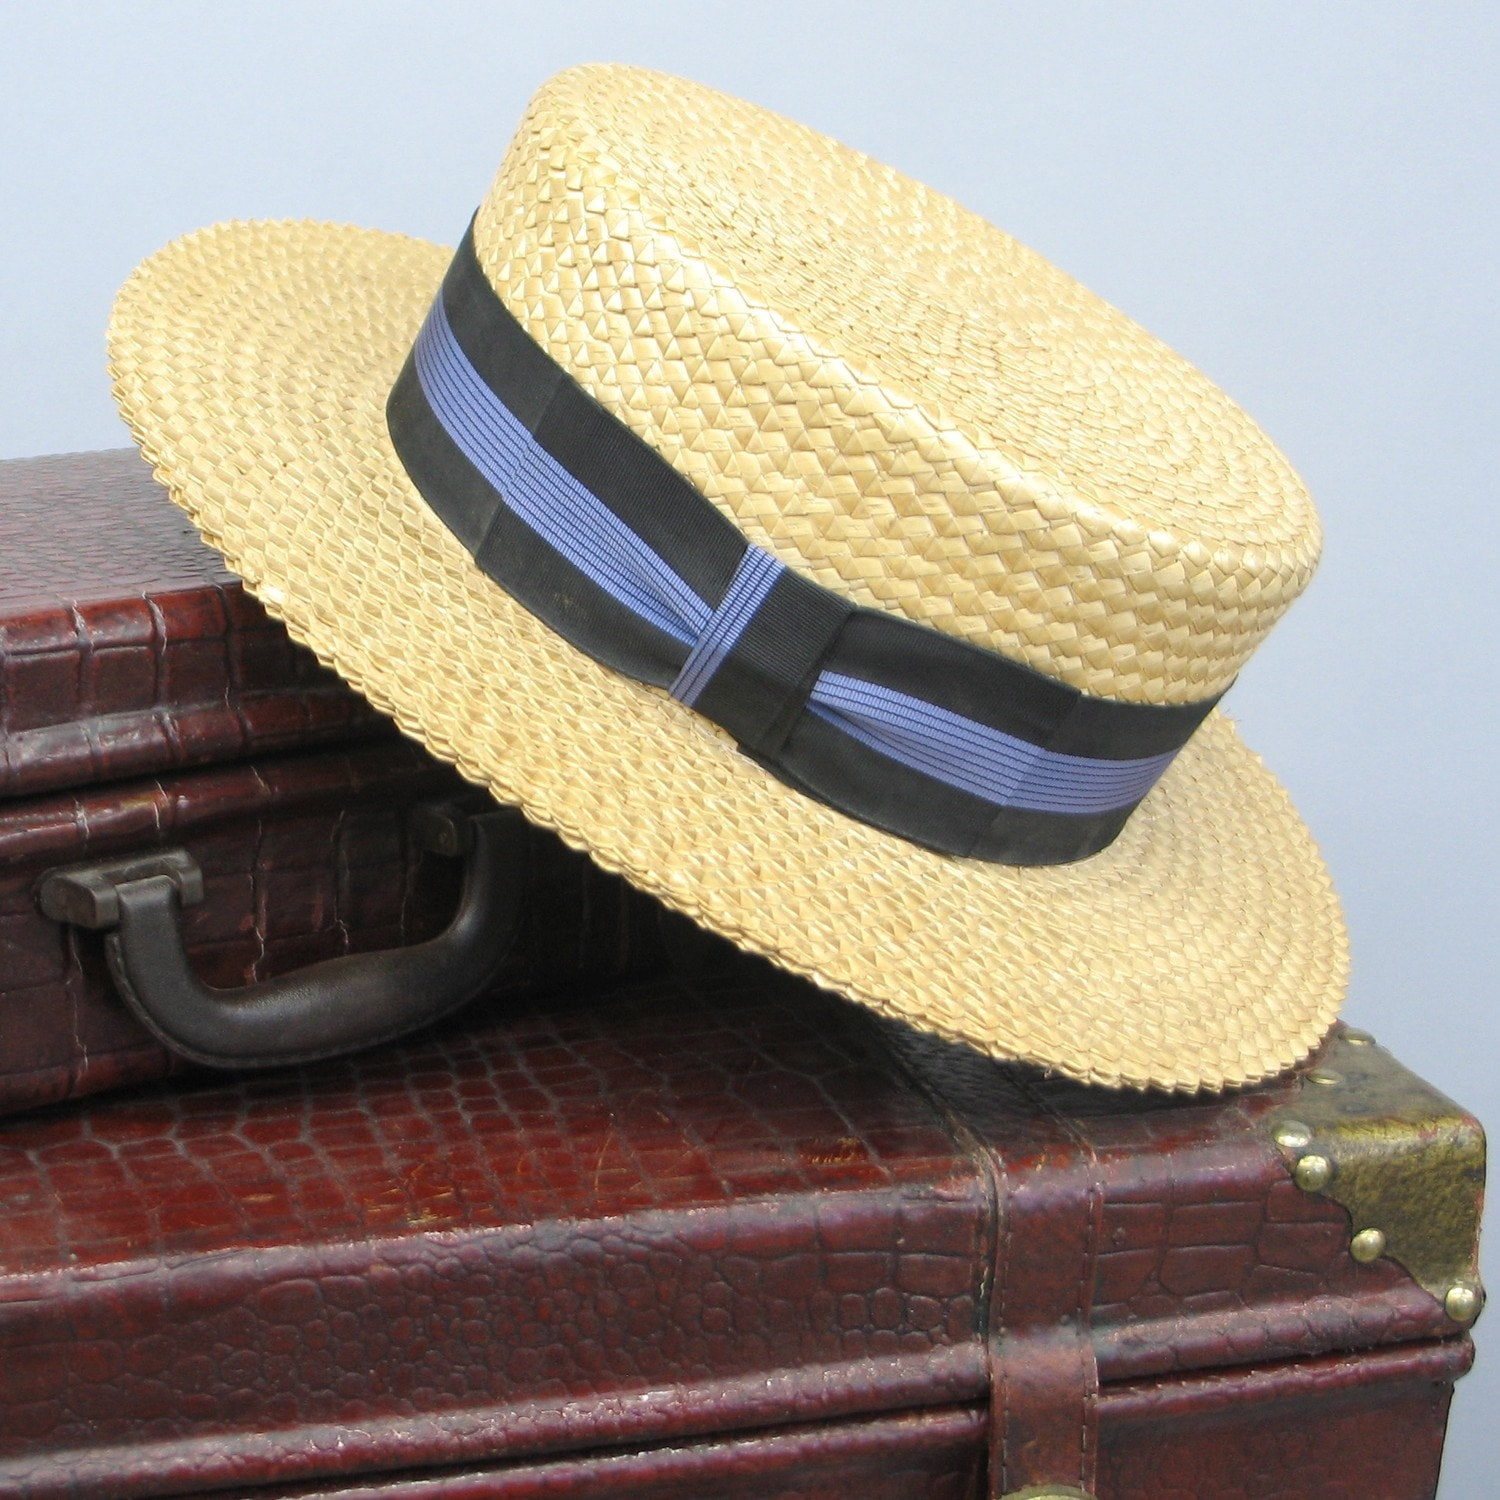 Find great deals on eBay for Boater Hat in Vintage Straw Hats For Men. Shop with confidence.